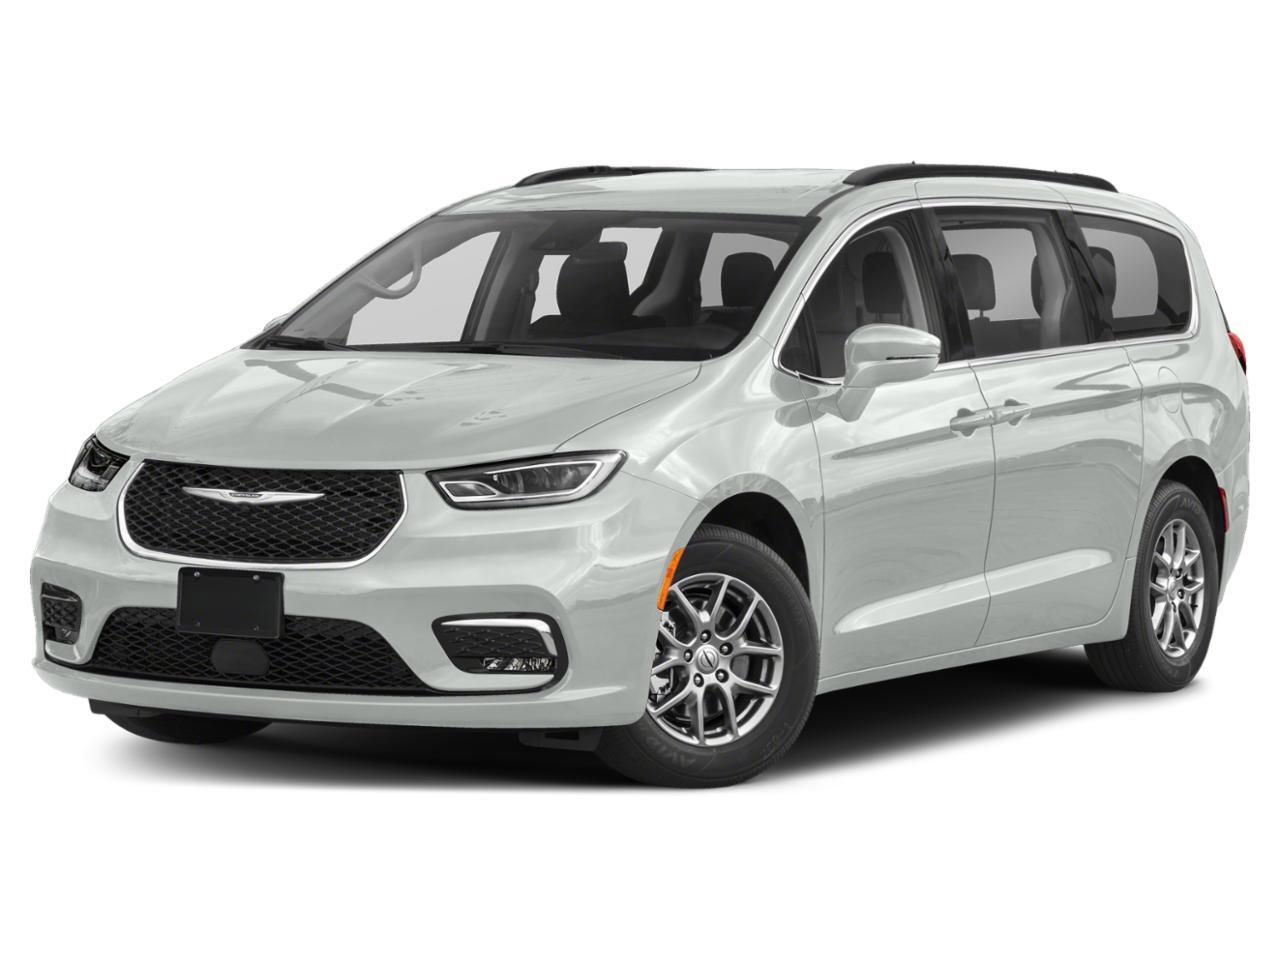 2021 Chrysler Pacifica -GP